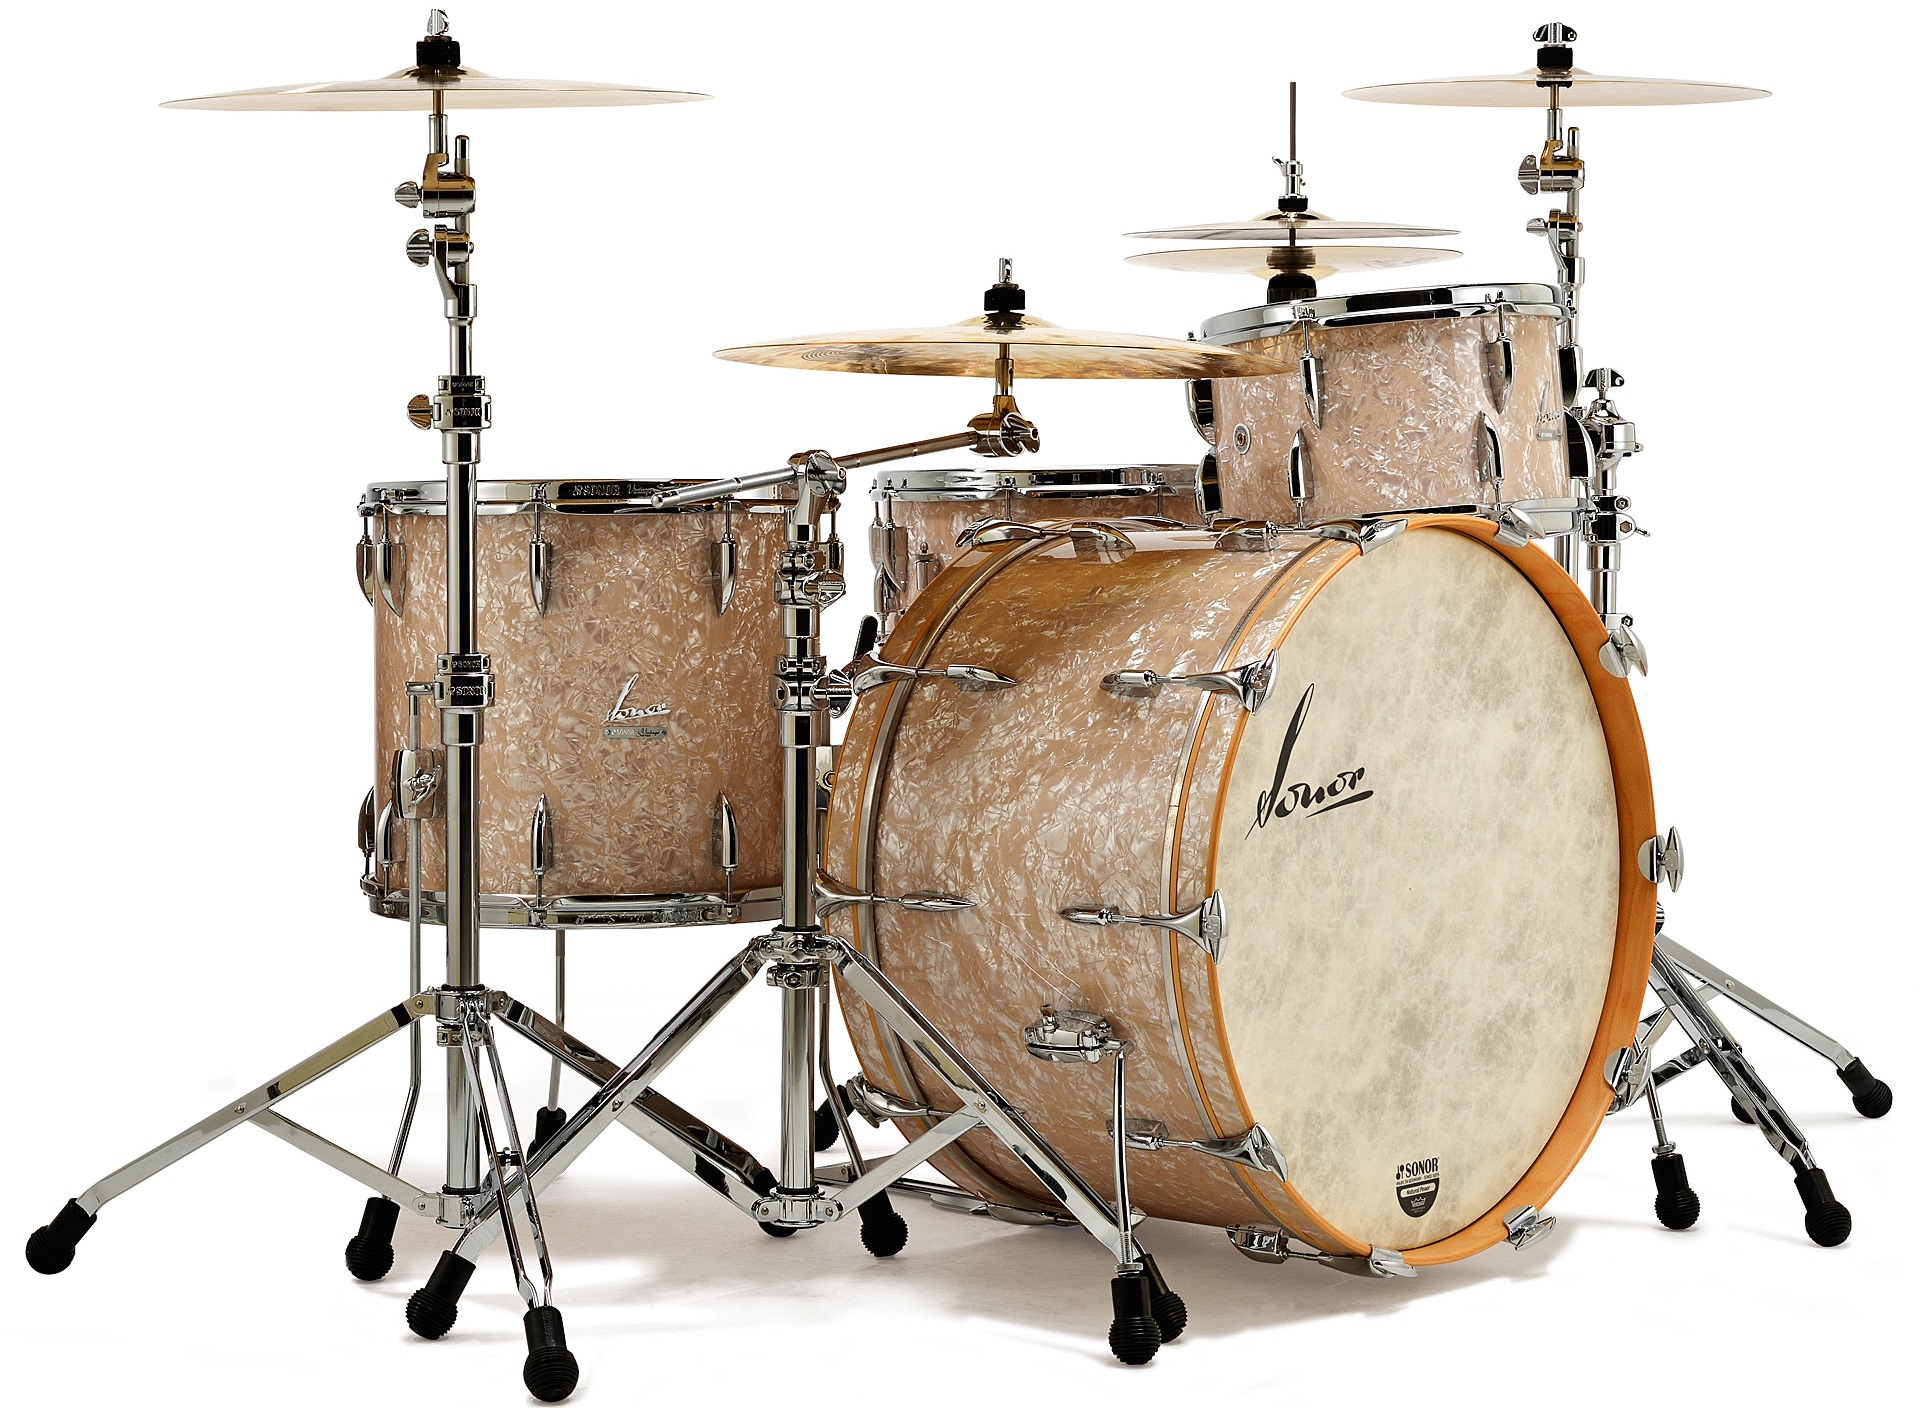 Sonor Vintage series set 1 Vintage pearl